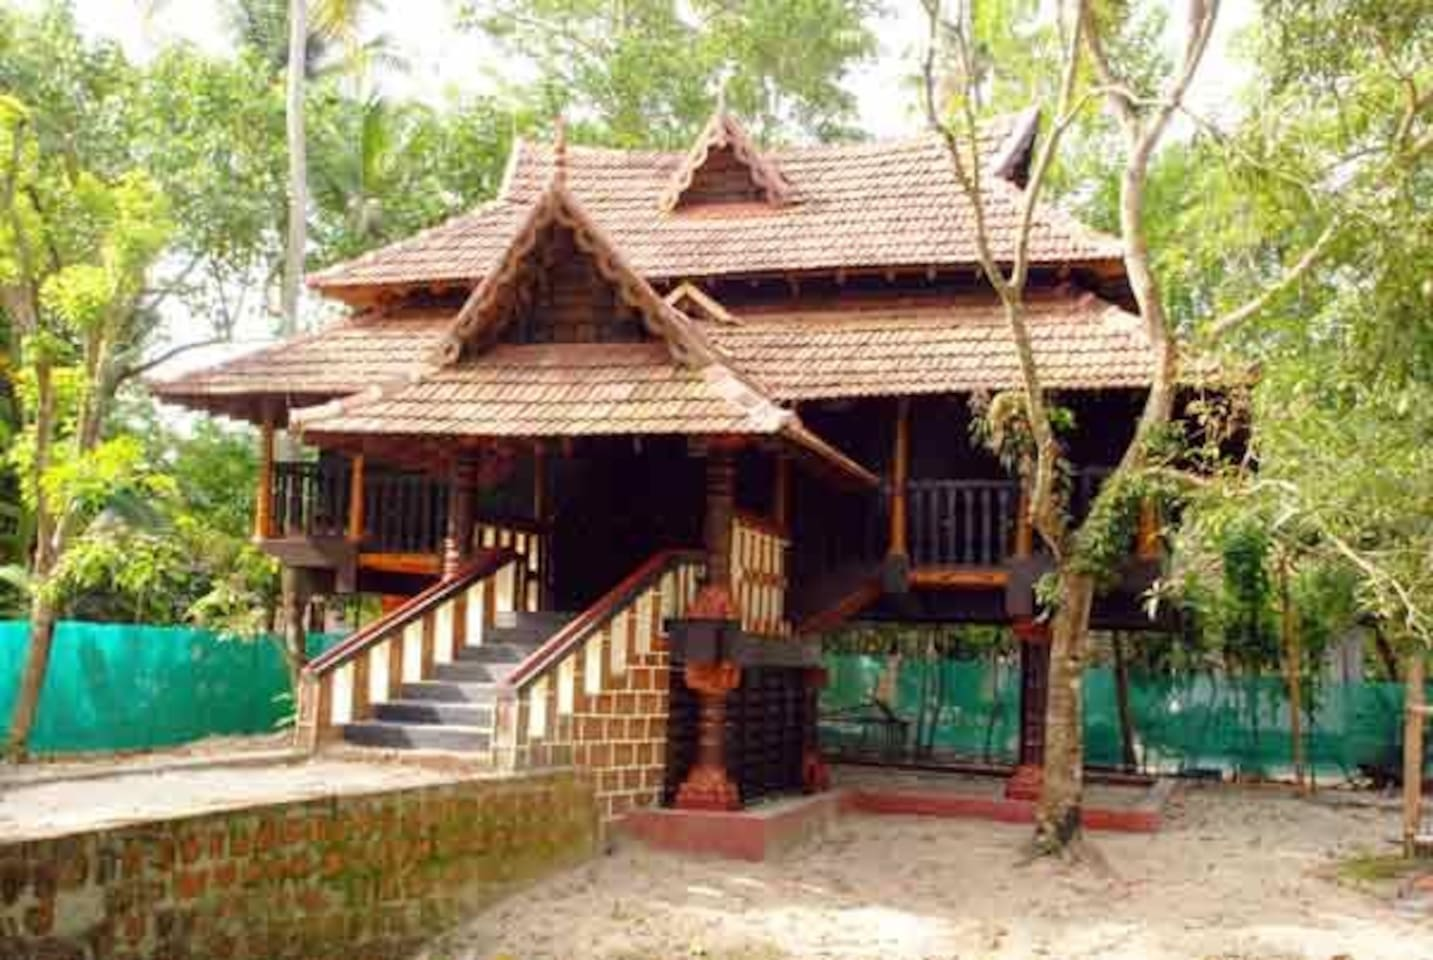 heritage cottage in Kerala